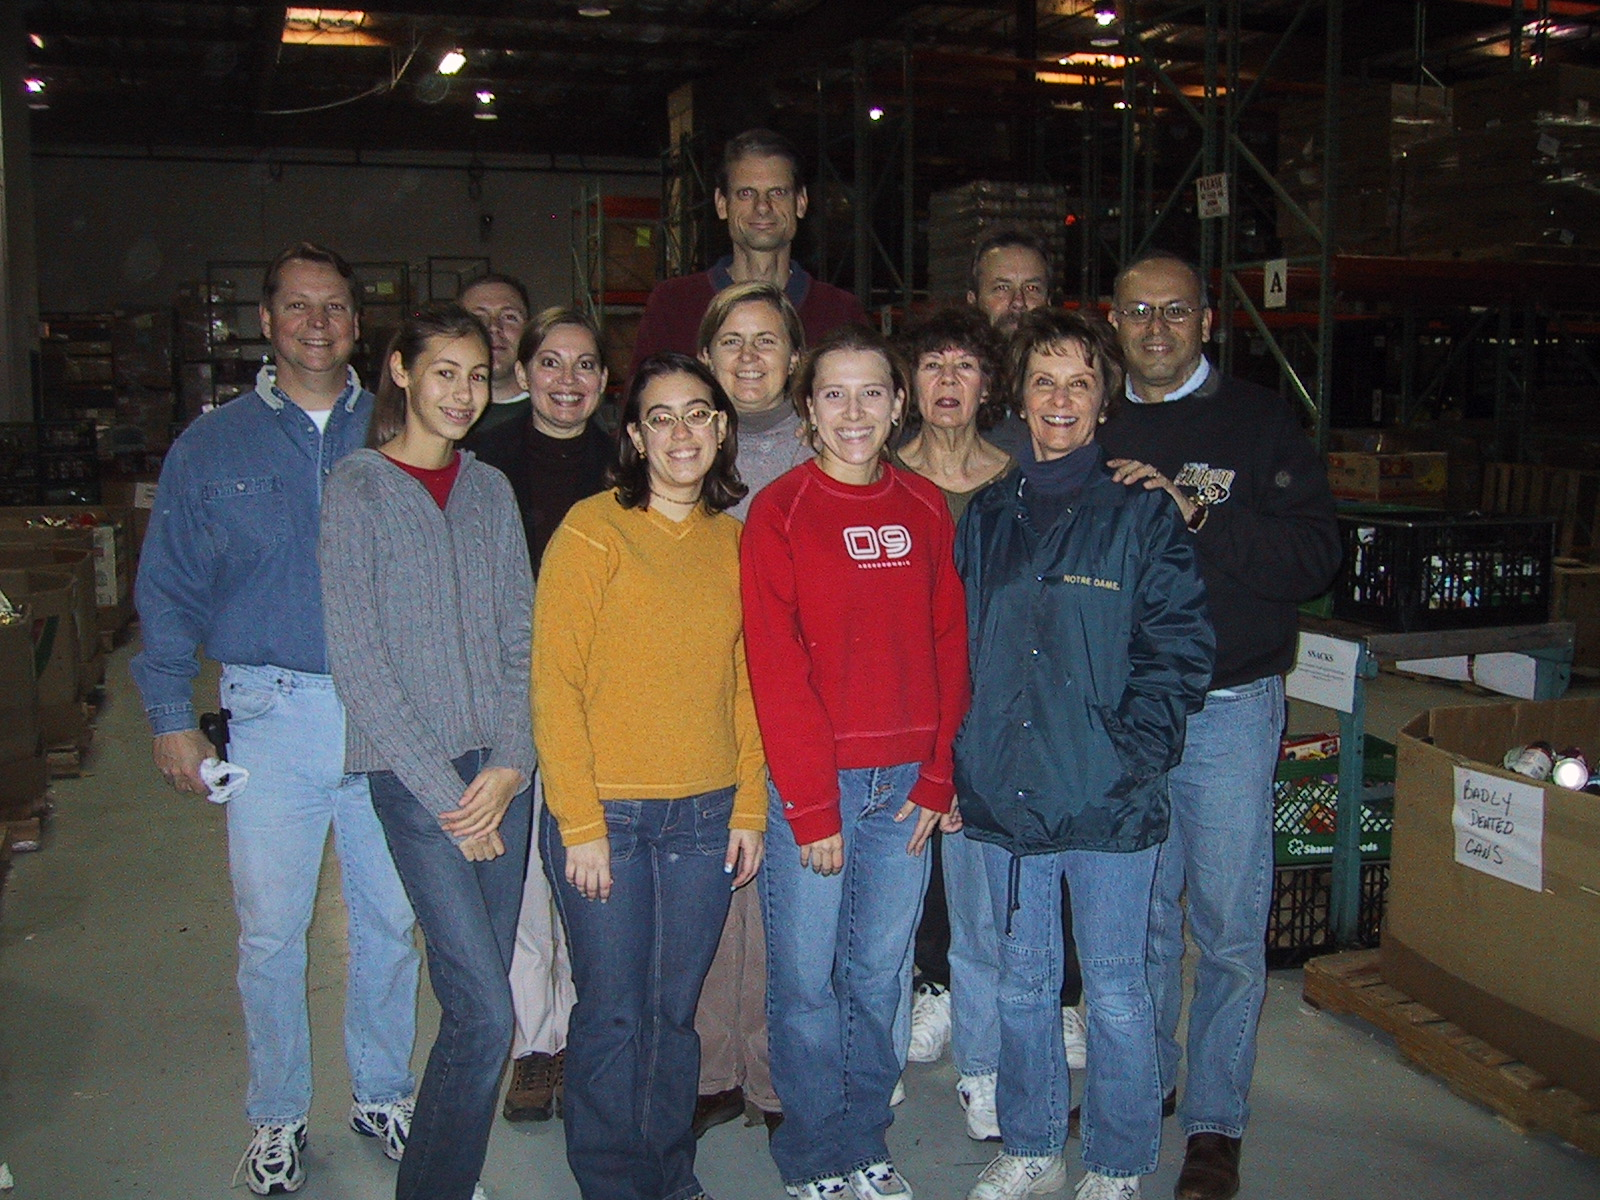 One of our first team photos from St. Mary's Food Bank - Always giving back!